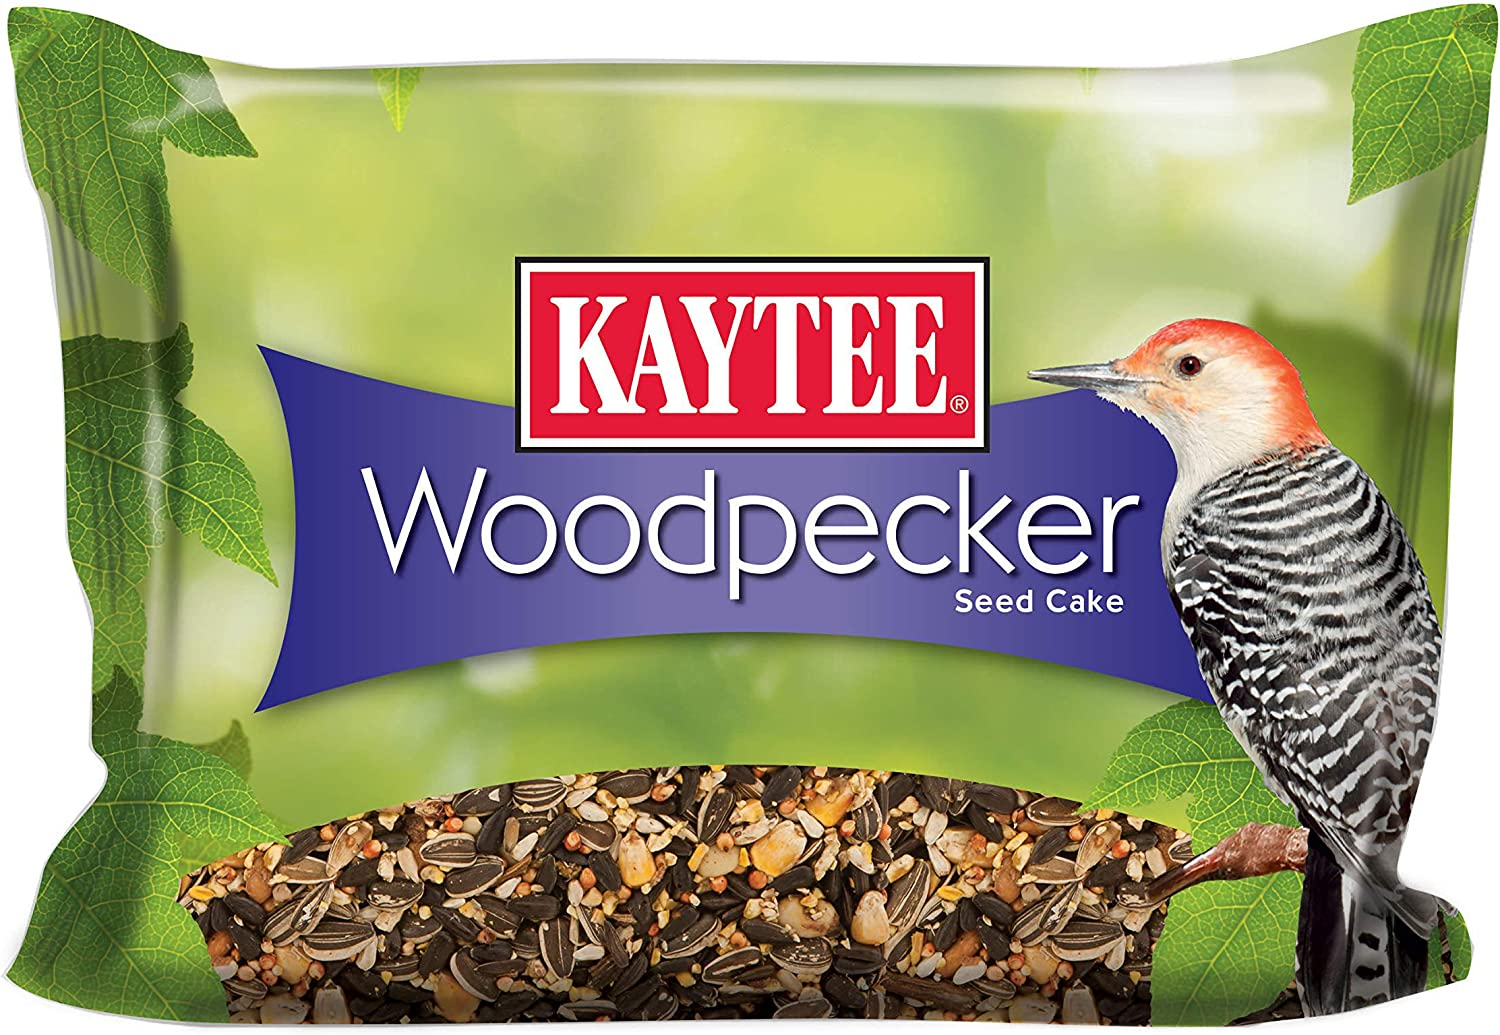 Kaytee Woodpecker Cake, 1.85-Pound